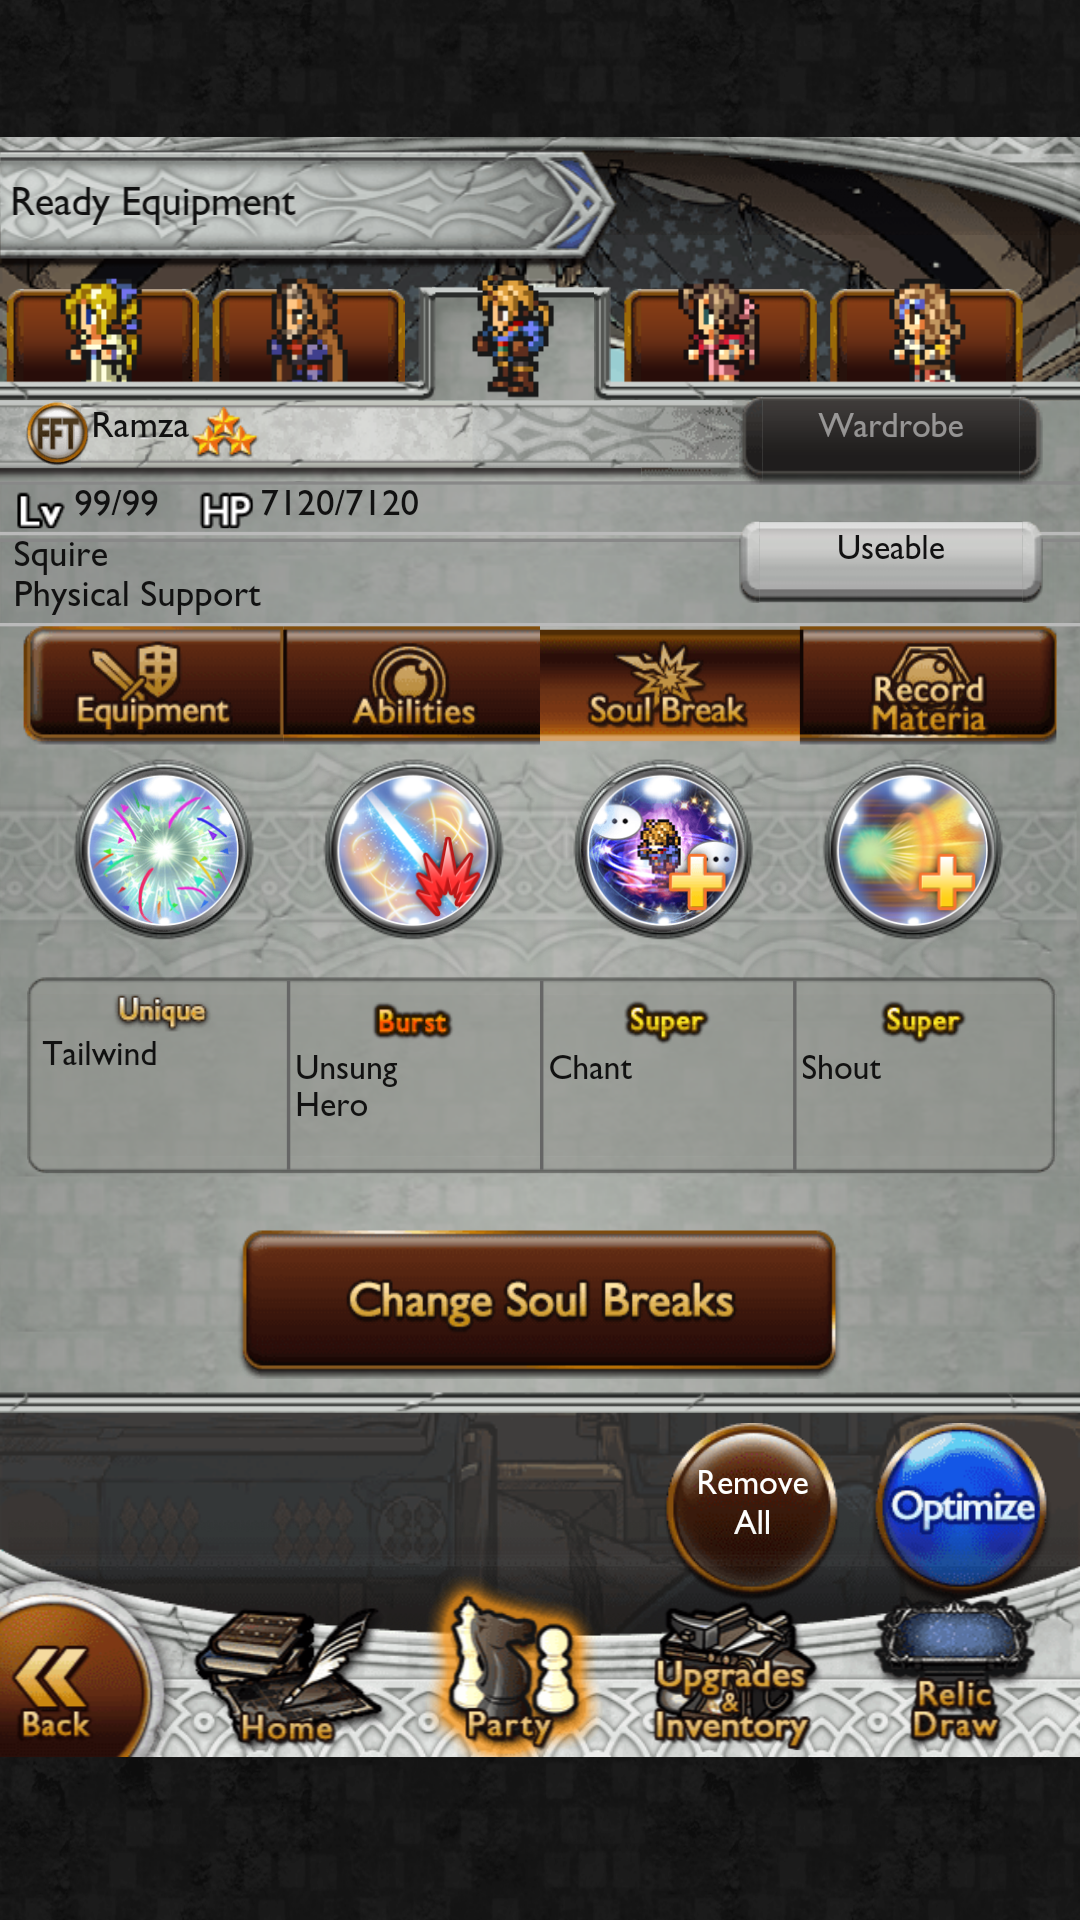 oravis games acct gloves trash failed-suicide pull 211 onion gorsh thread drop dangit lani ffrk main sword